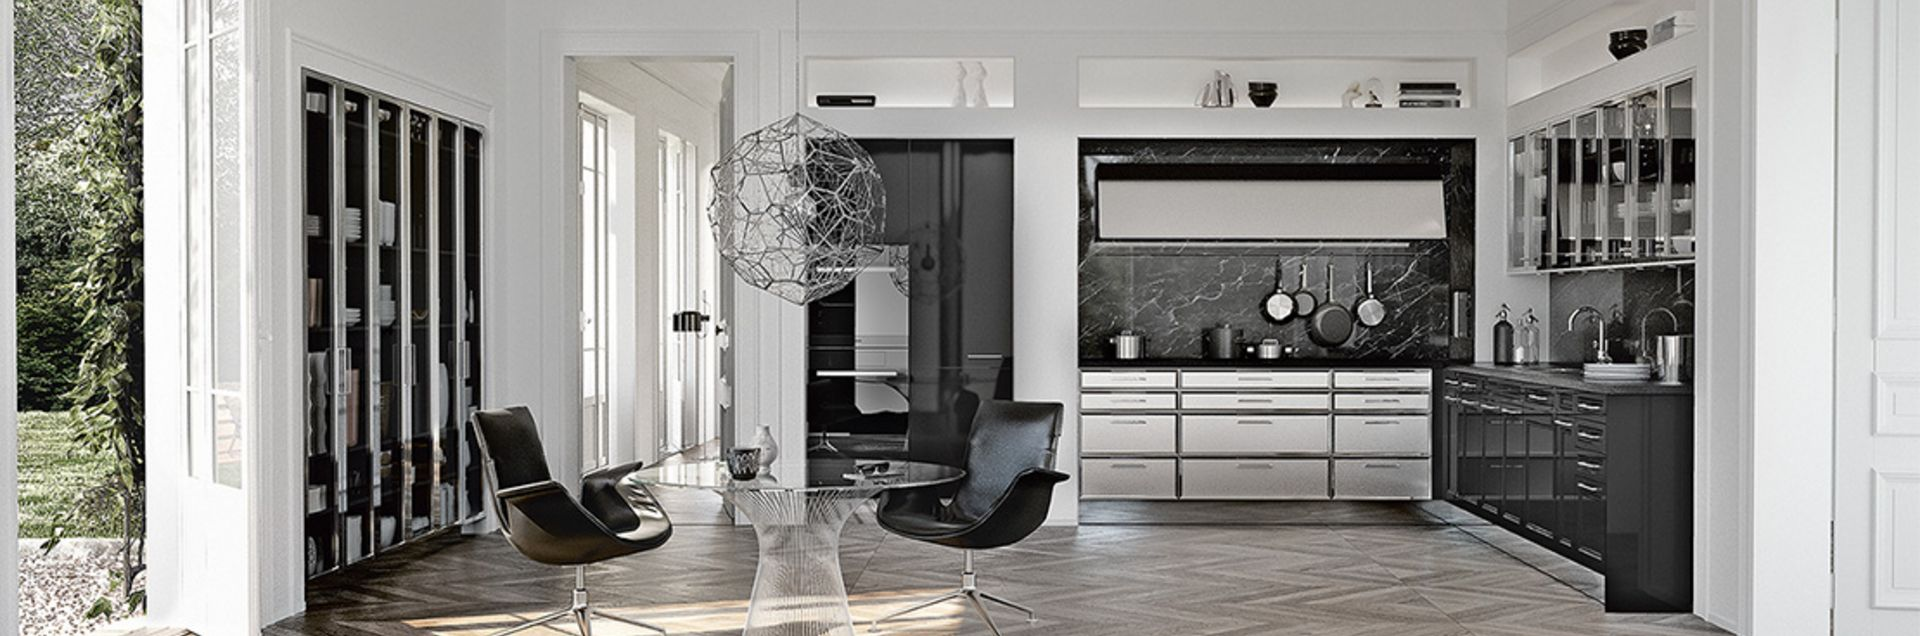 SieMatic Classic BeauxArts 02